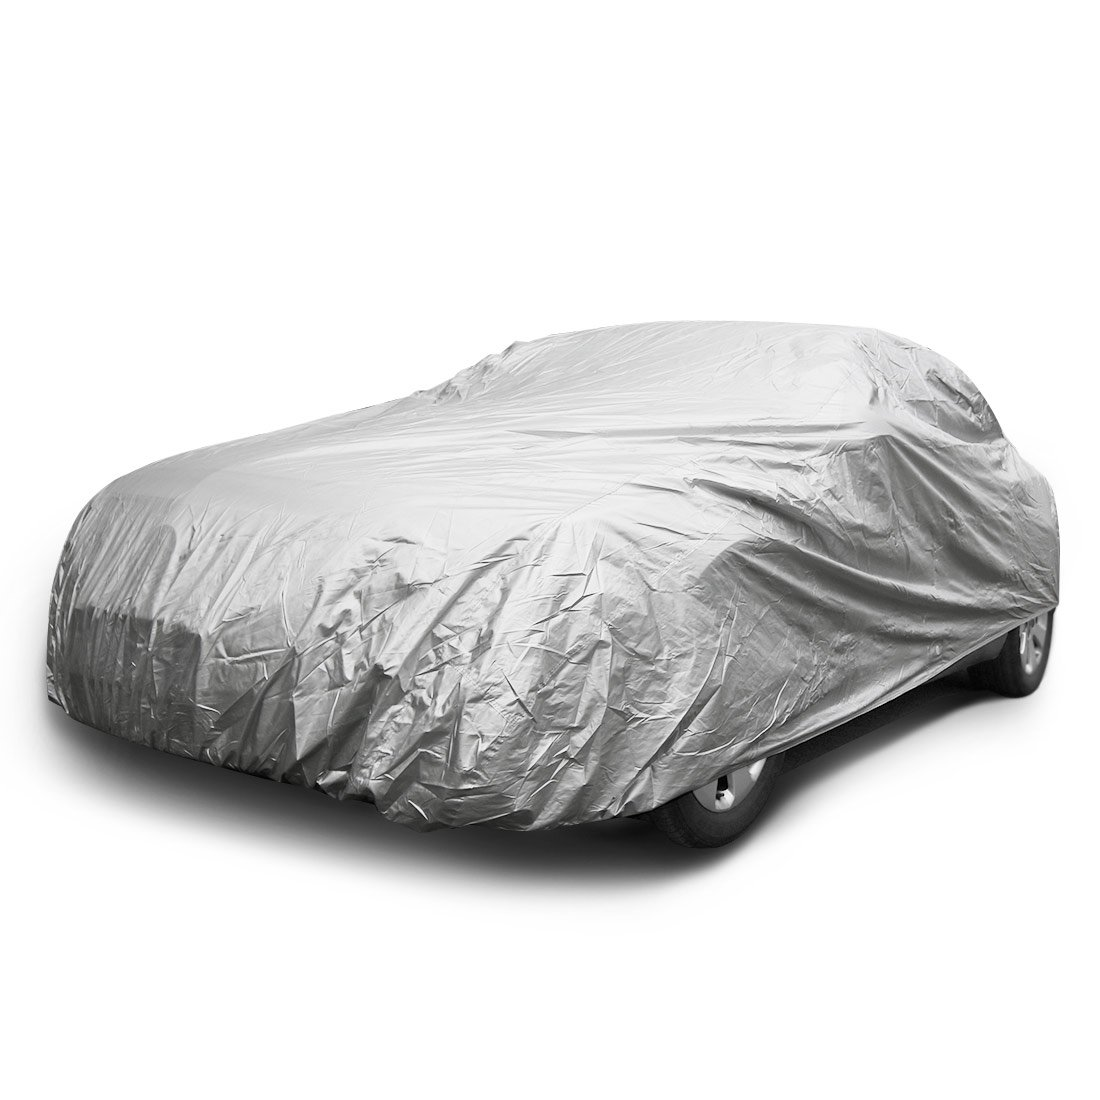 COPAP Car Cover Nylon Fabric Size XL Paint Safe Universal Full Size Sedan Fits up to 190' Waterproof & Dustproof UV Resistant (Storage Bag included) M&L